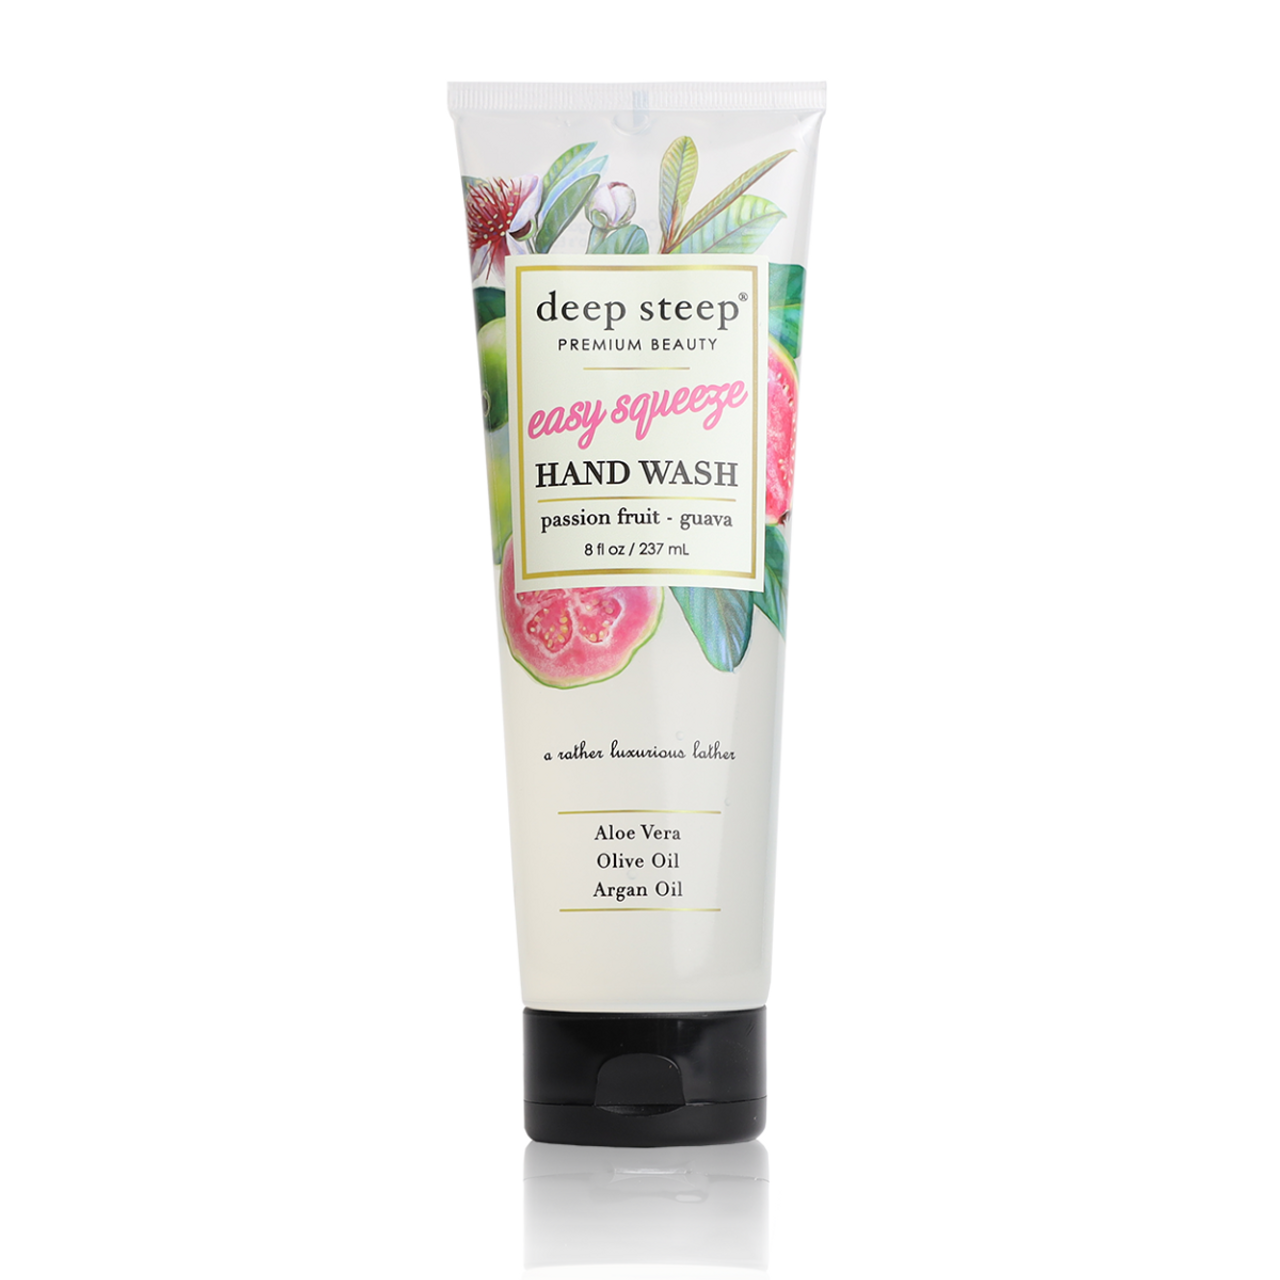 Easy Squeeze Hand Wash, Passion Fruit Guava - FRONT